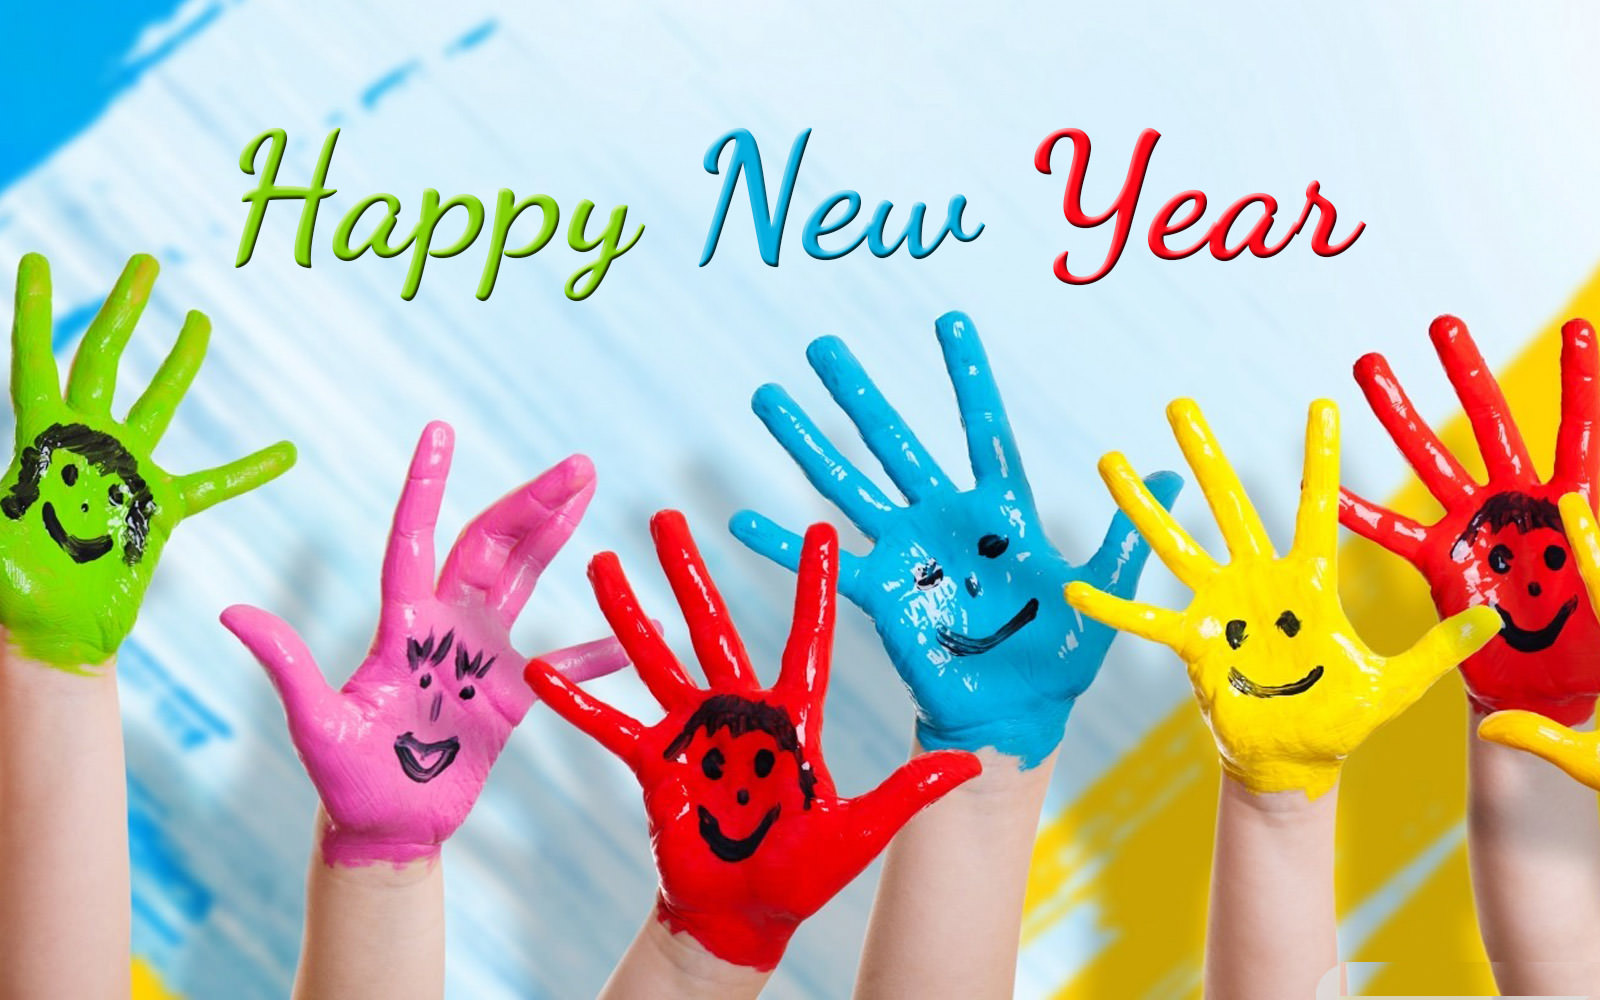 Wallpaper download new year 2015 - Wallpaper Download New Year New Year Wallpaper Download Download Wallpaper Download New Year New Year Wallpaper Download Download